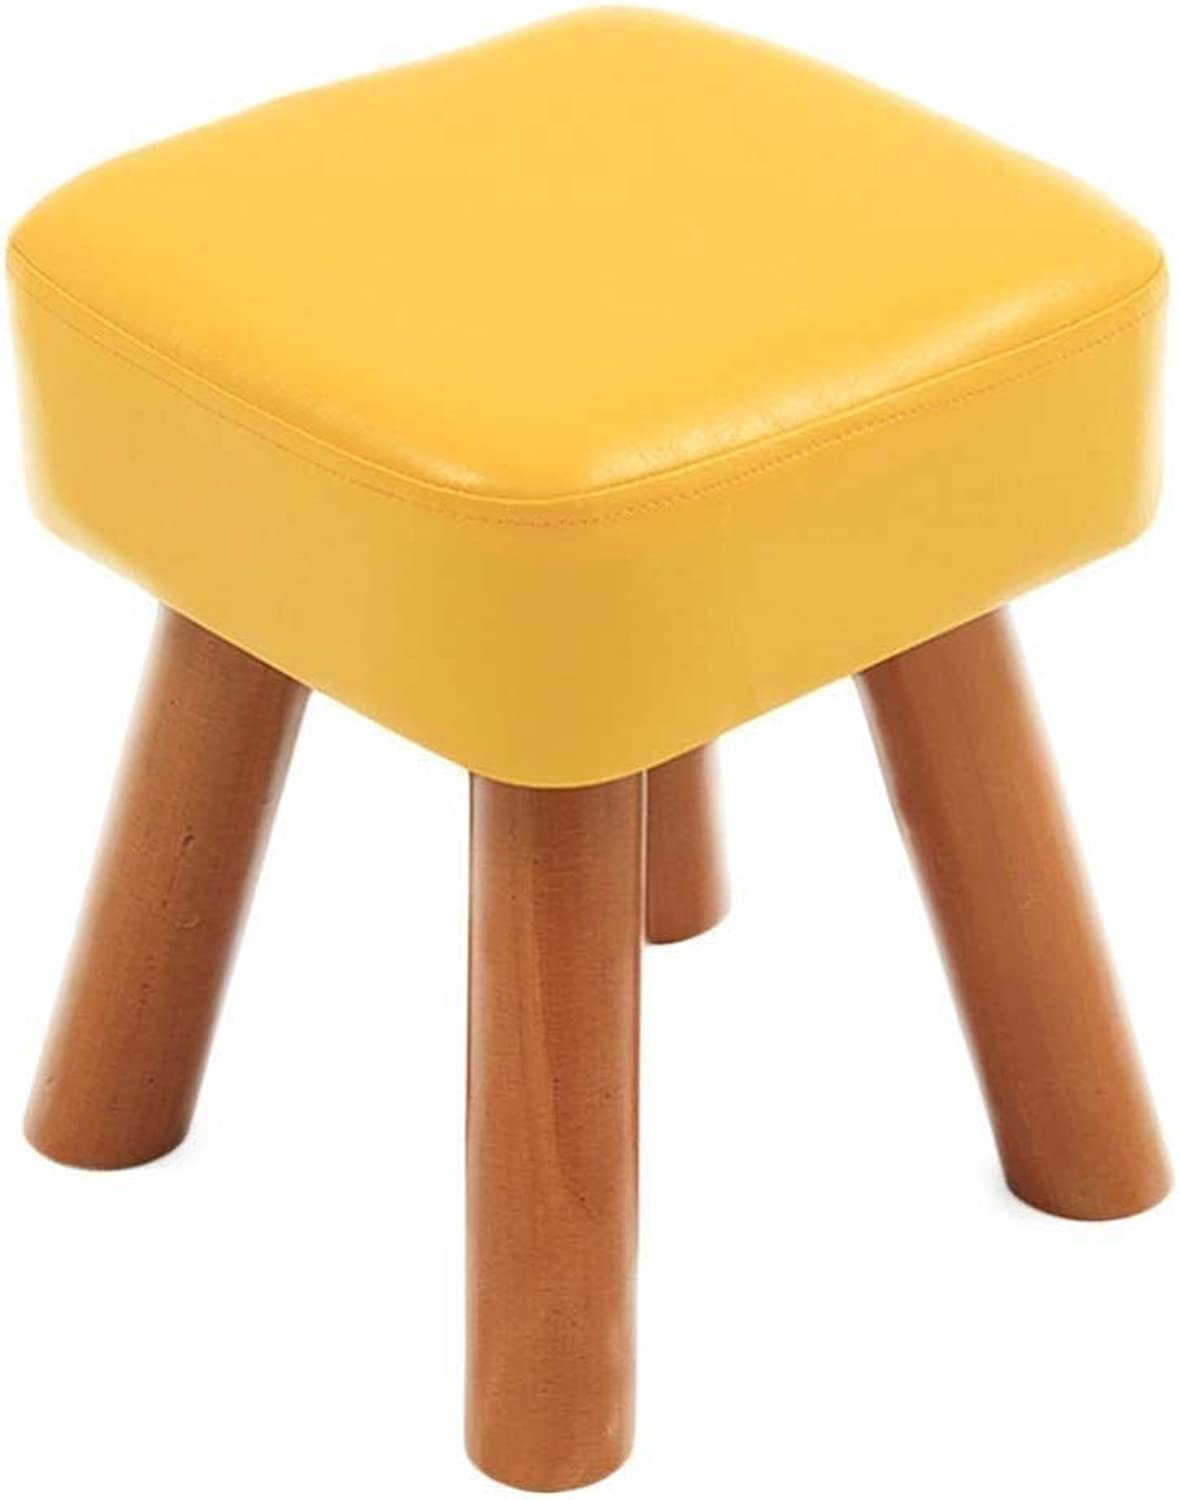 Leather Stool, Small Sofa Footstool, Change shoes Bench Solid Wood Living Room (color   Yellow, Size   28cm28cm32cm)